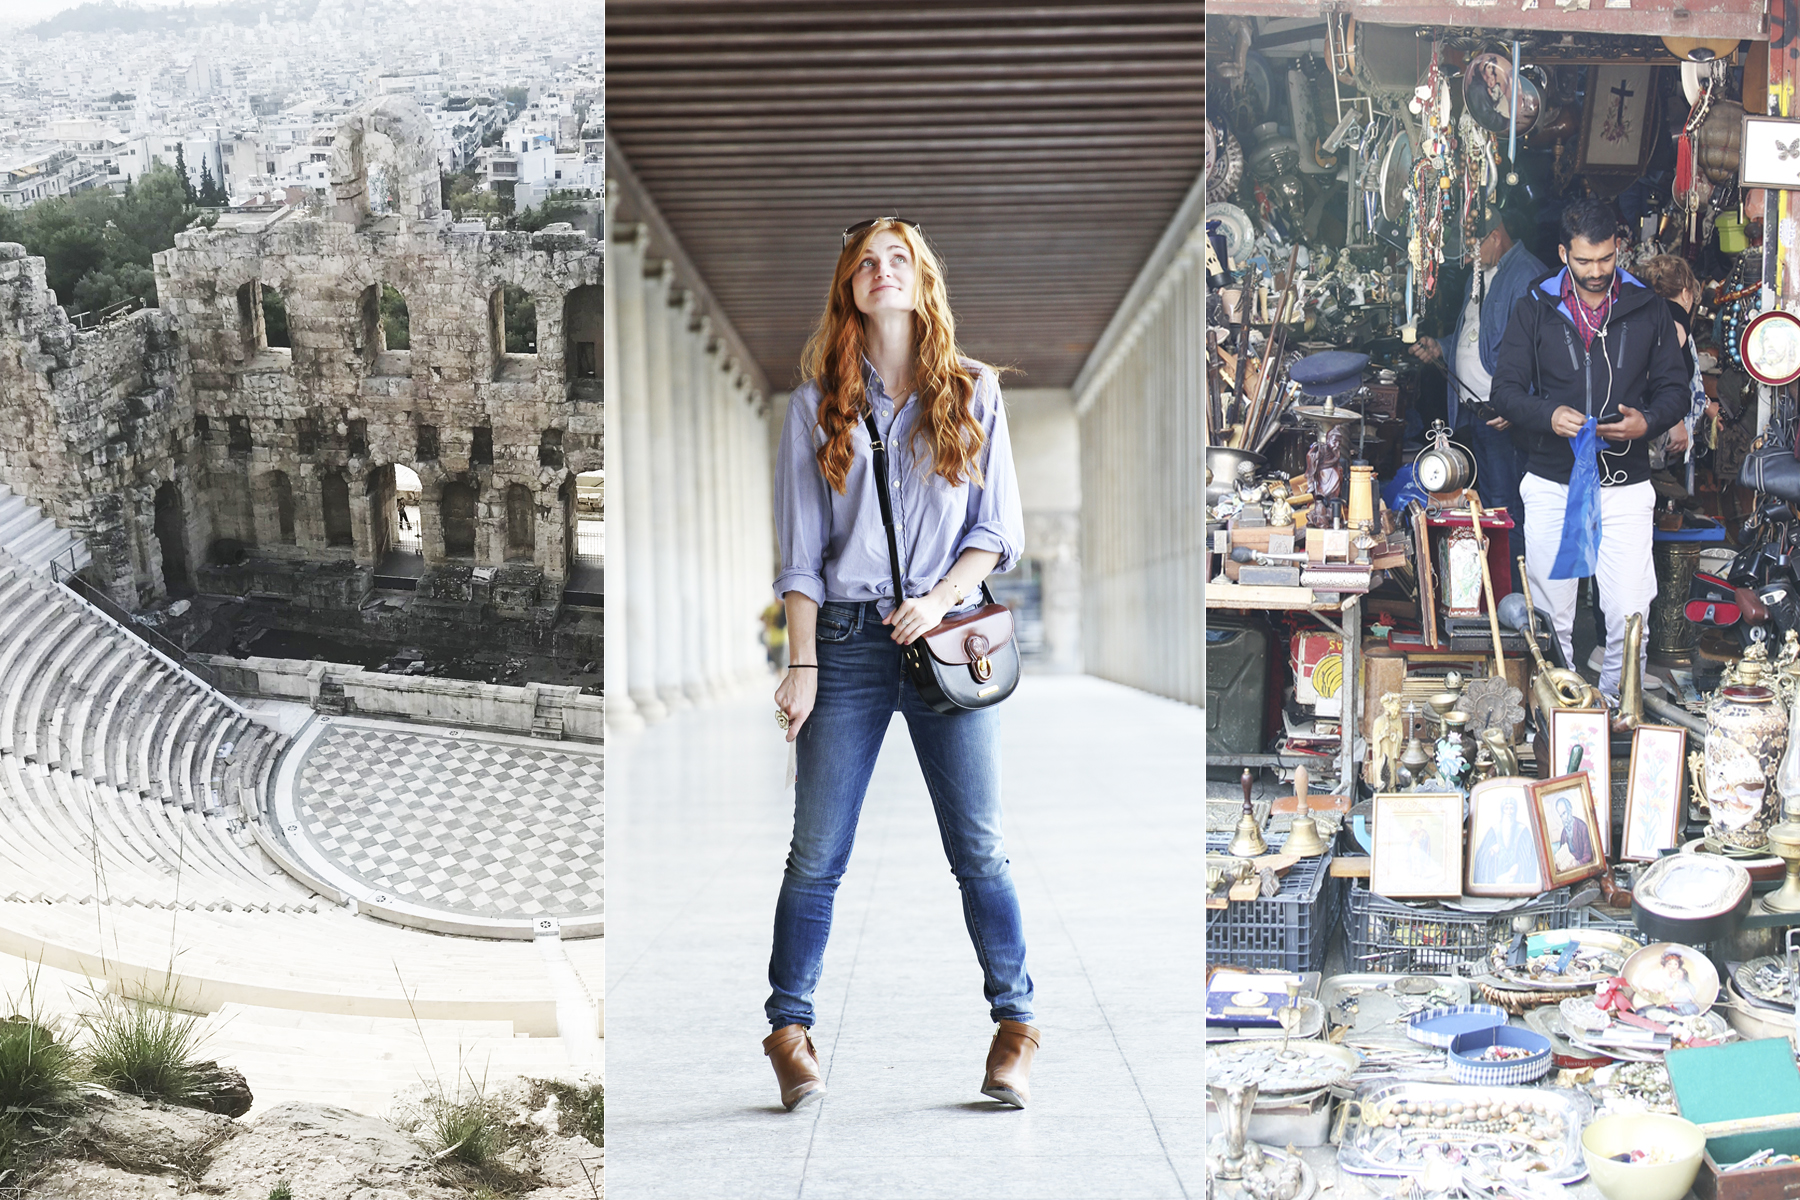 Theatre in Greece, jeans outfit with blue top, Vintage shop in Athens